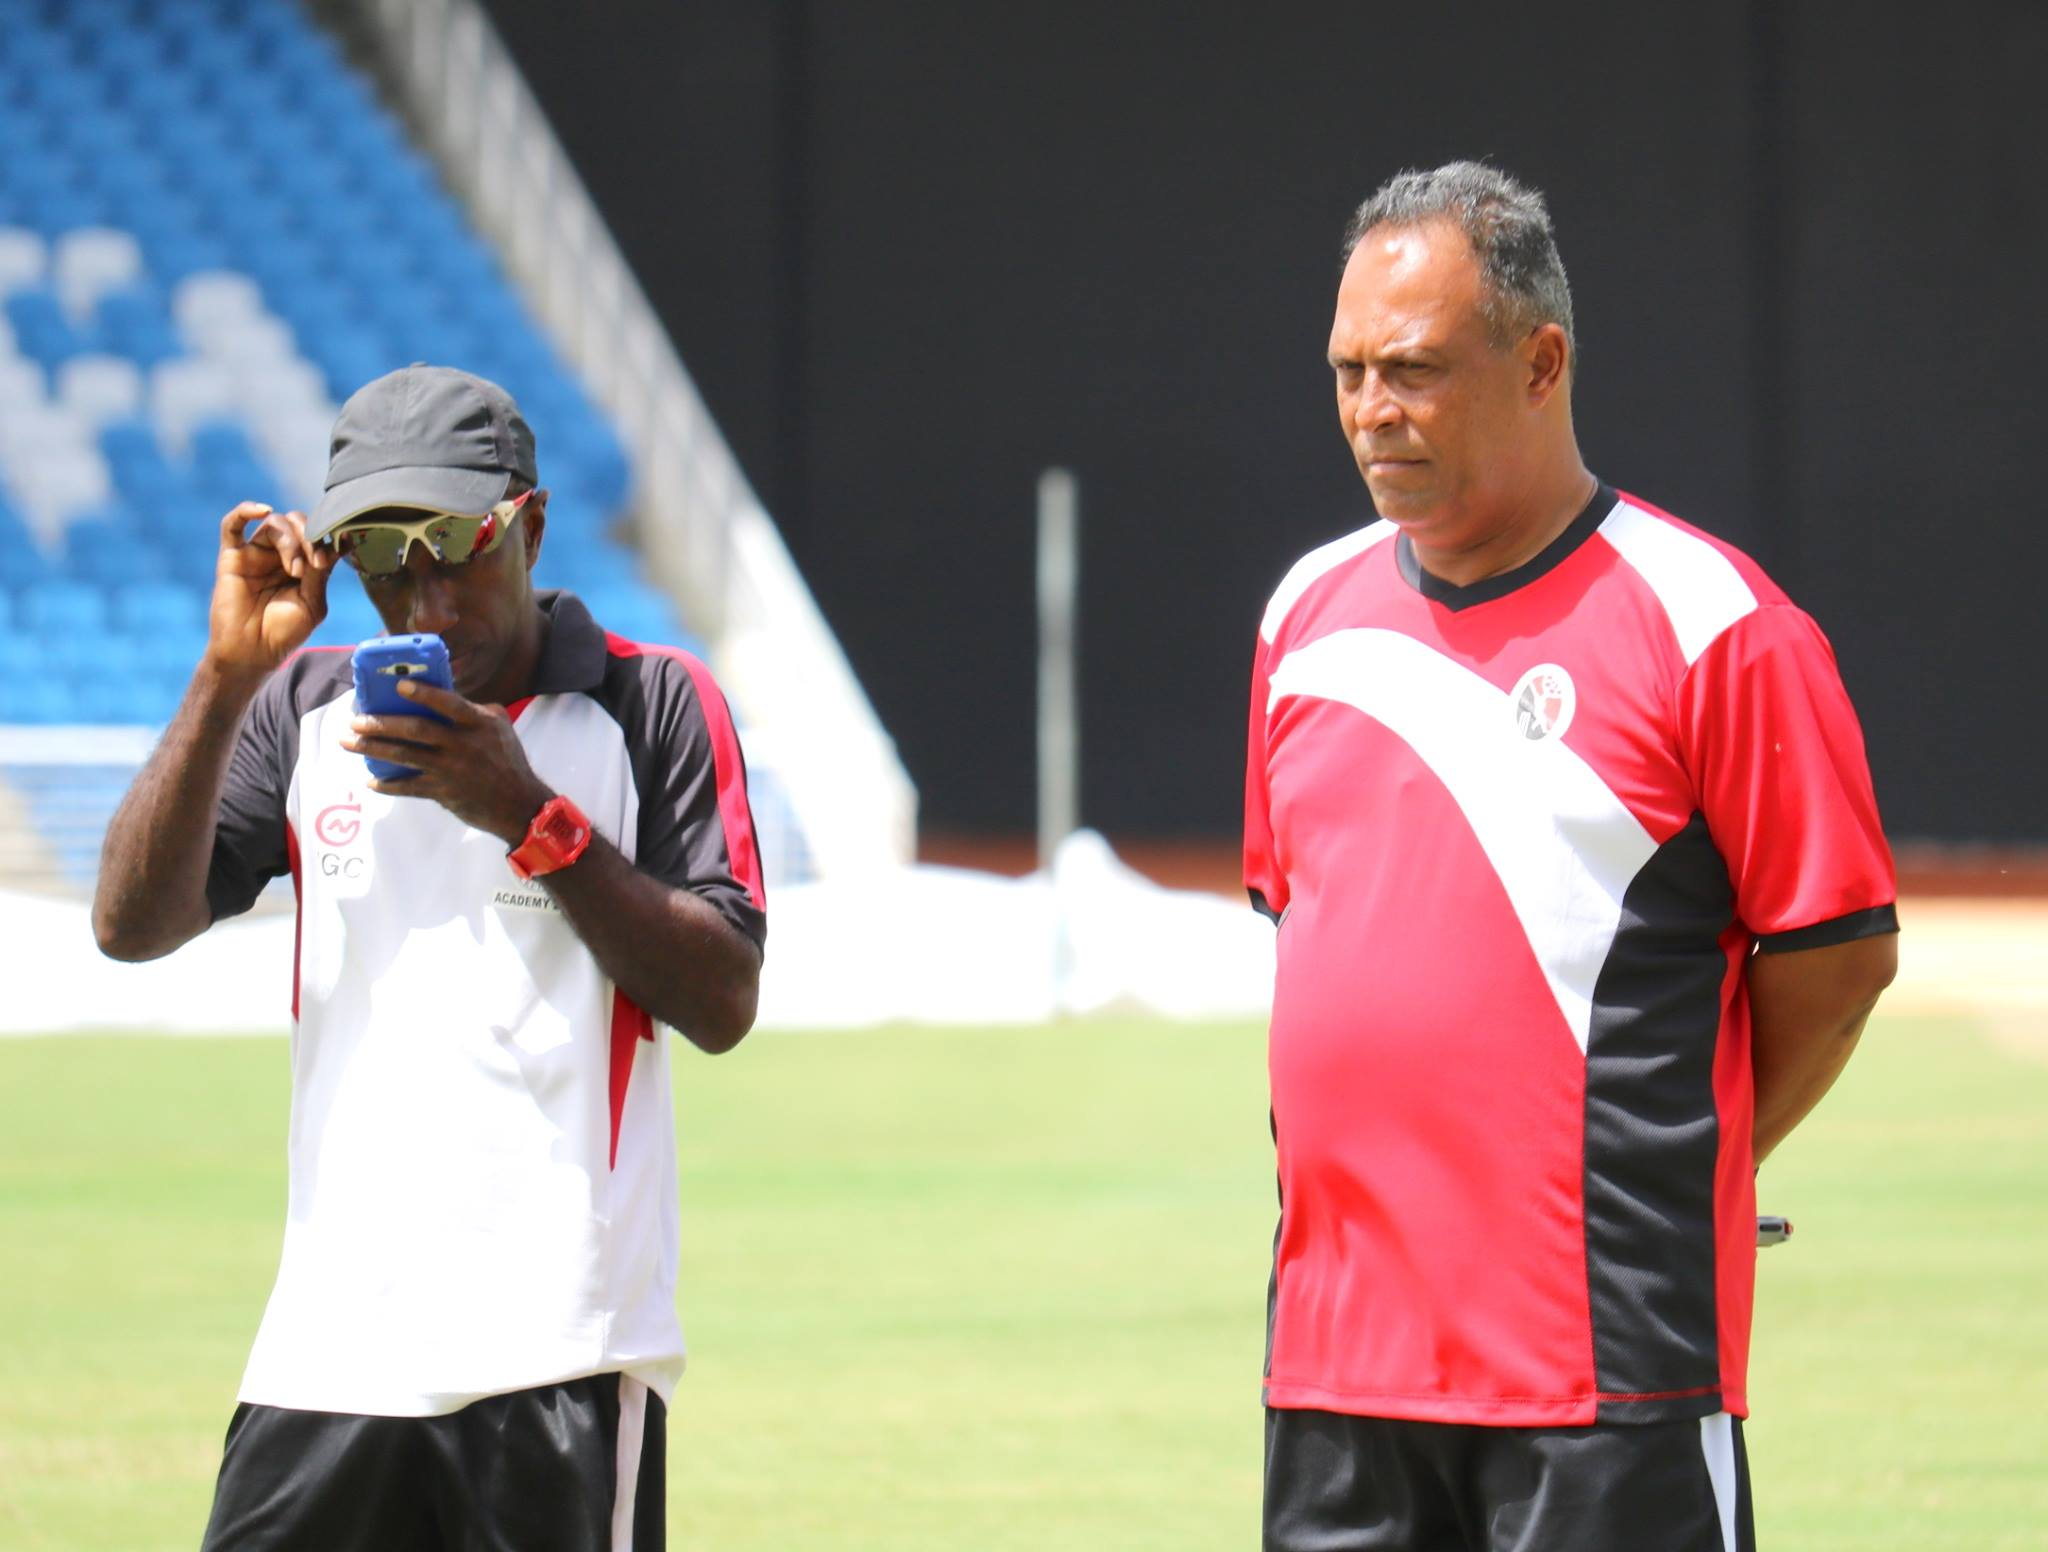 David Furlonge (right) was appointed head coach of the T&T national men's cricket team, T&T Red Force, by the Trinidad and Tobago Cricket Board. (Phot0 courtesy T&T Cricket Board media)